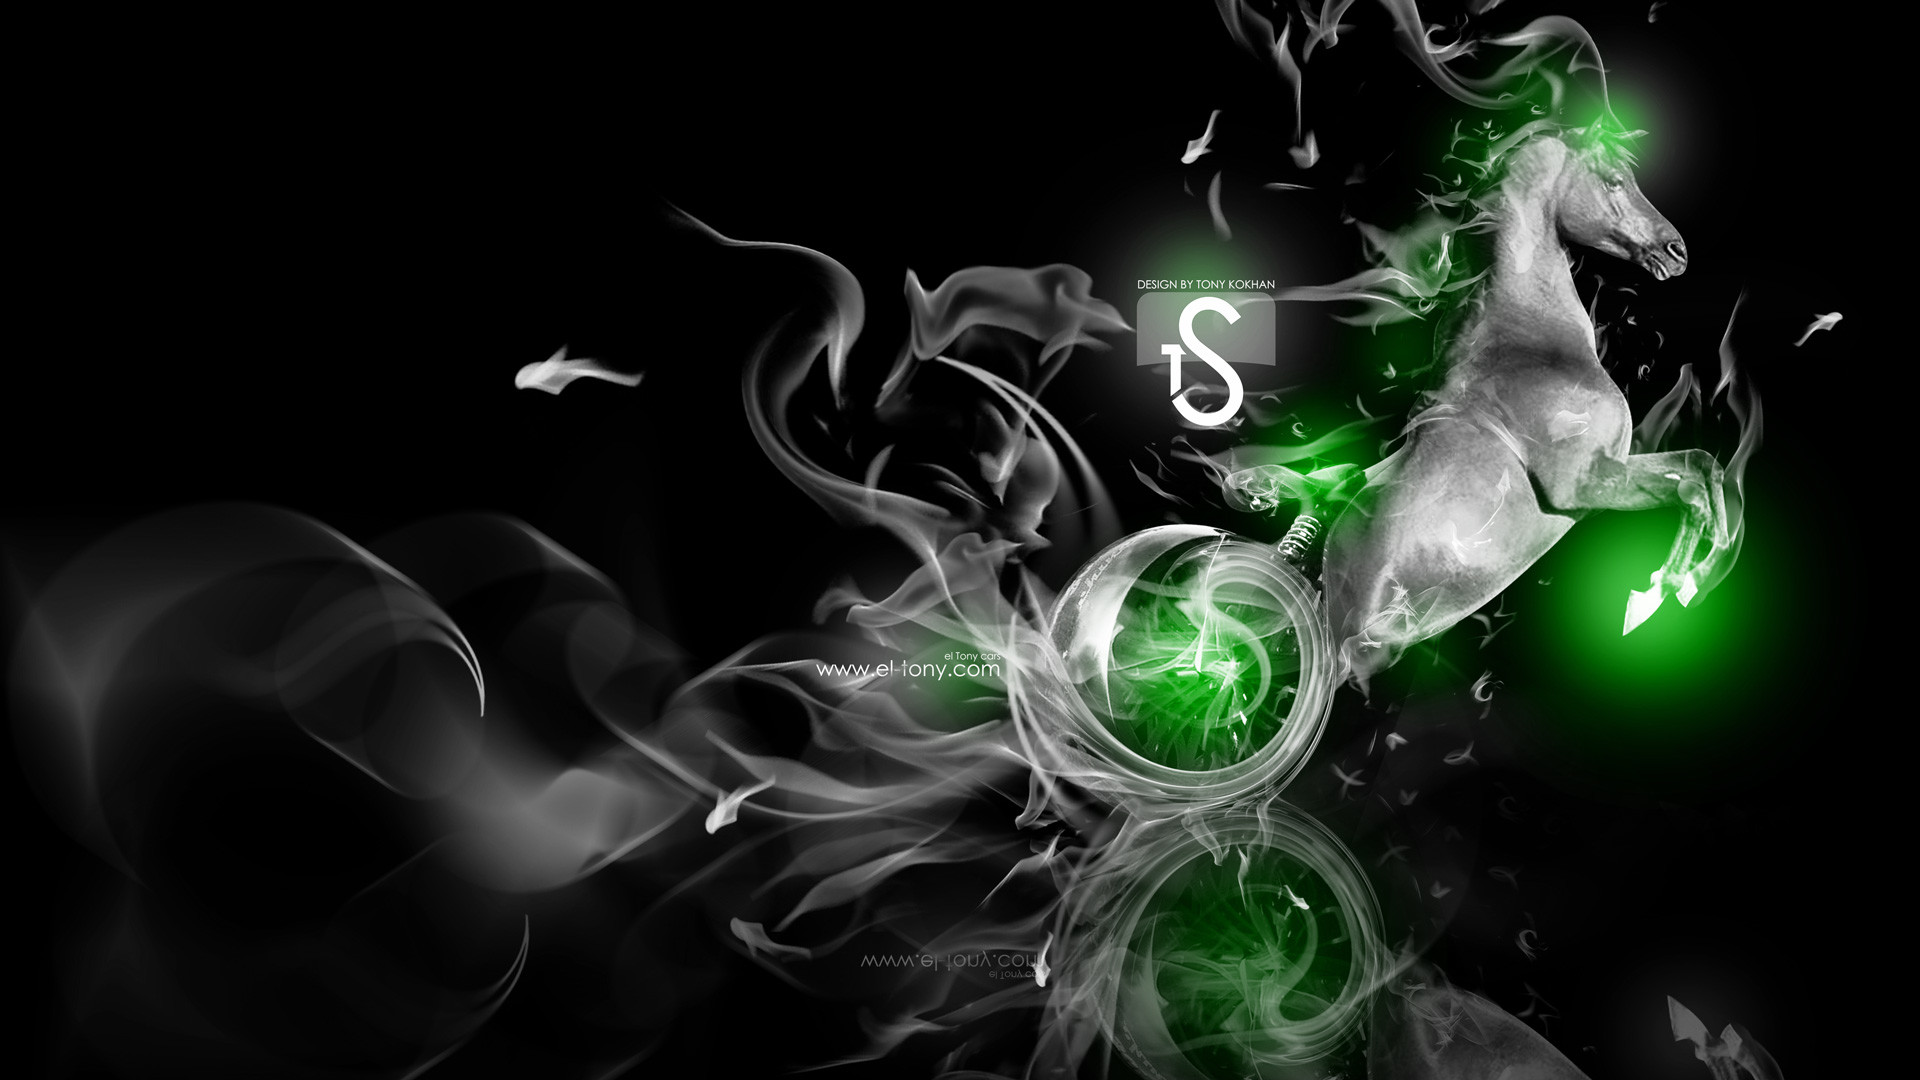 Res: 1920x1080, ... Fantasy-Fire-Moto-Horse-2014-Green-Neon-HD- ...